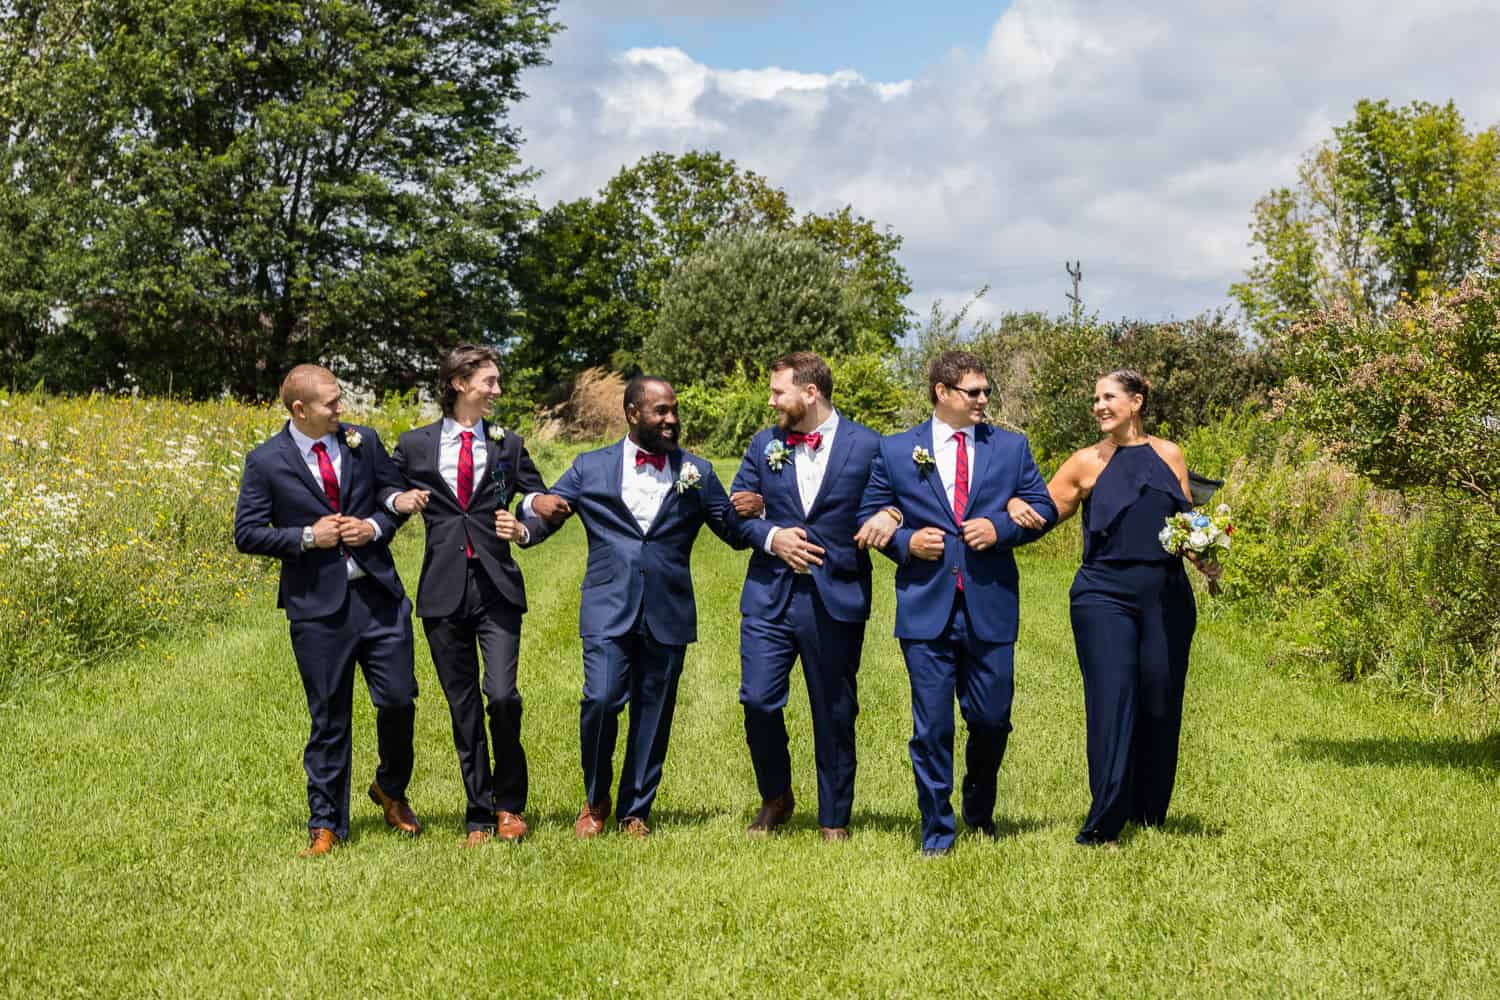 Funny wedding pictures at twin silos barn.